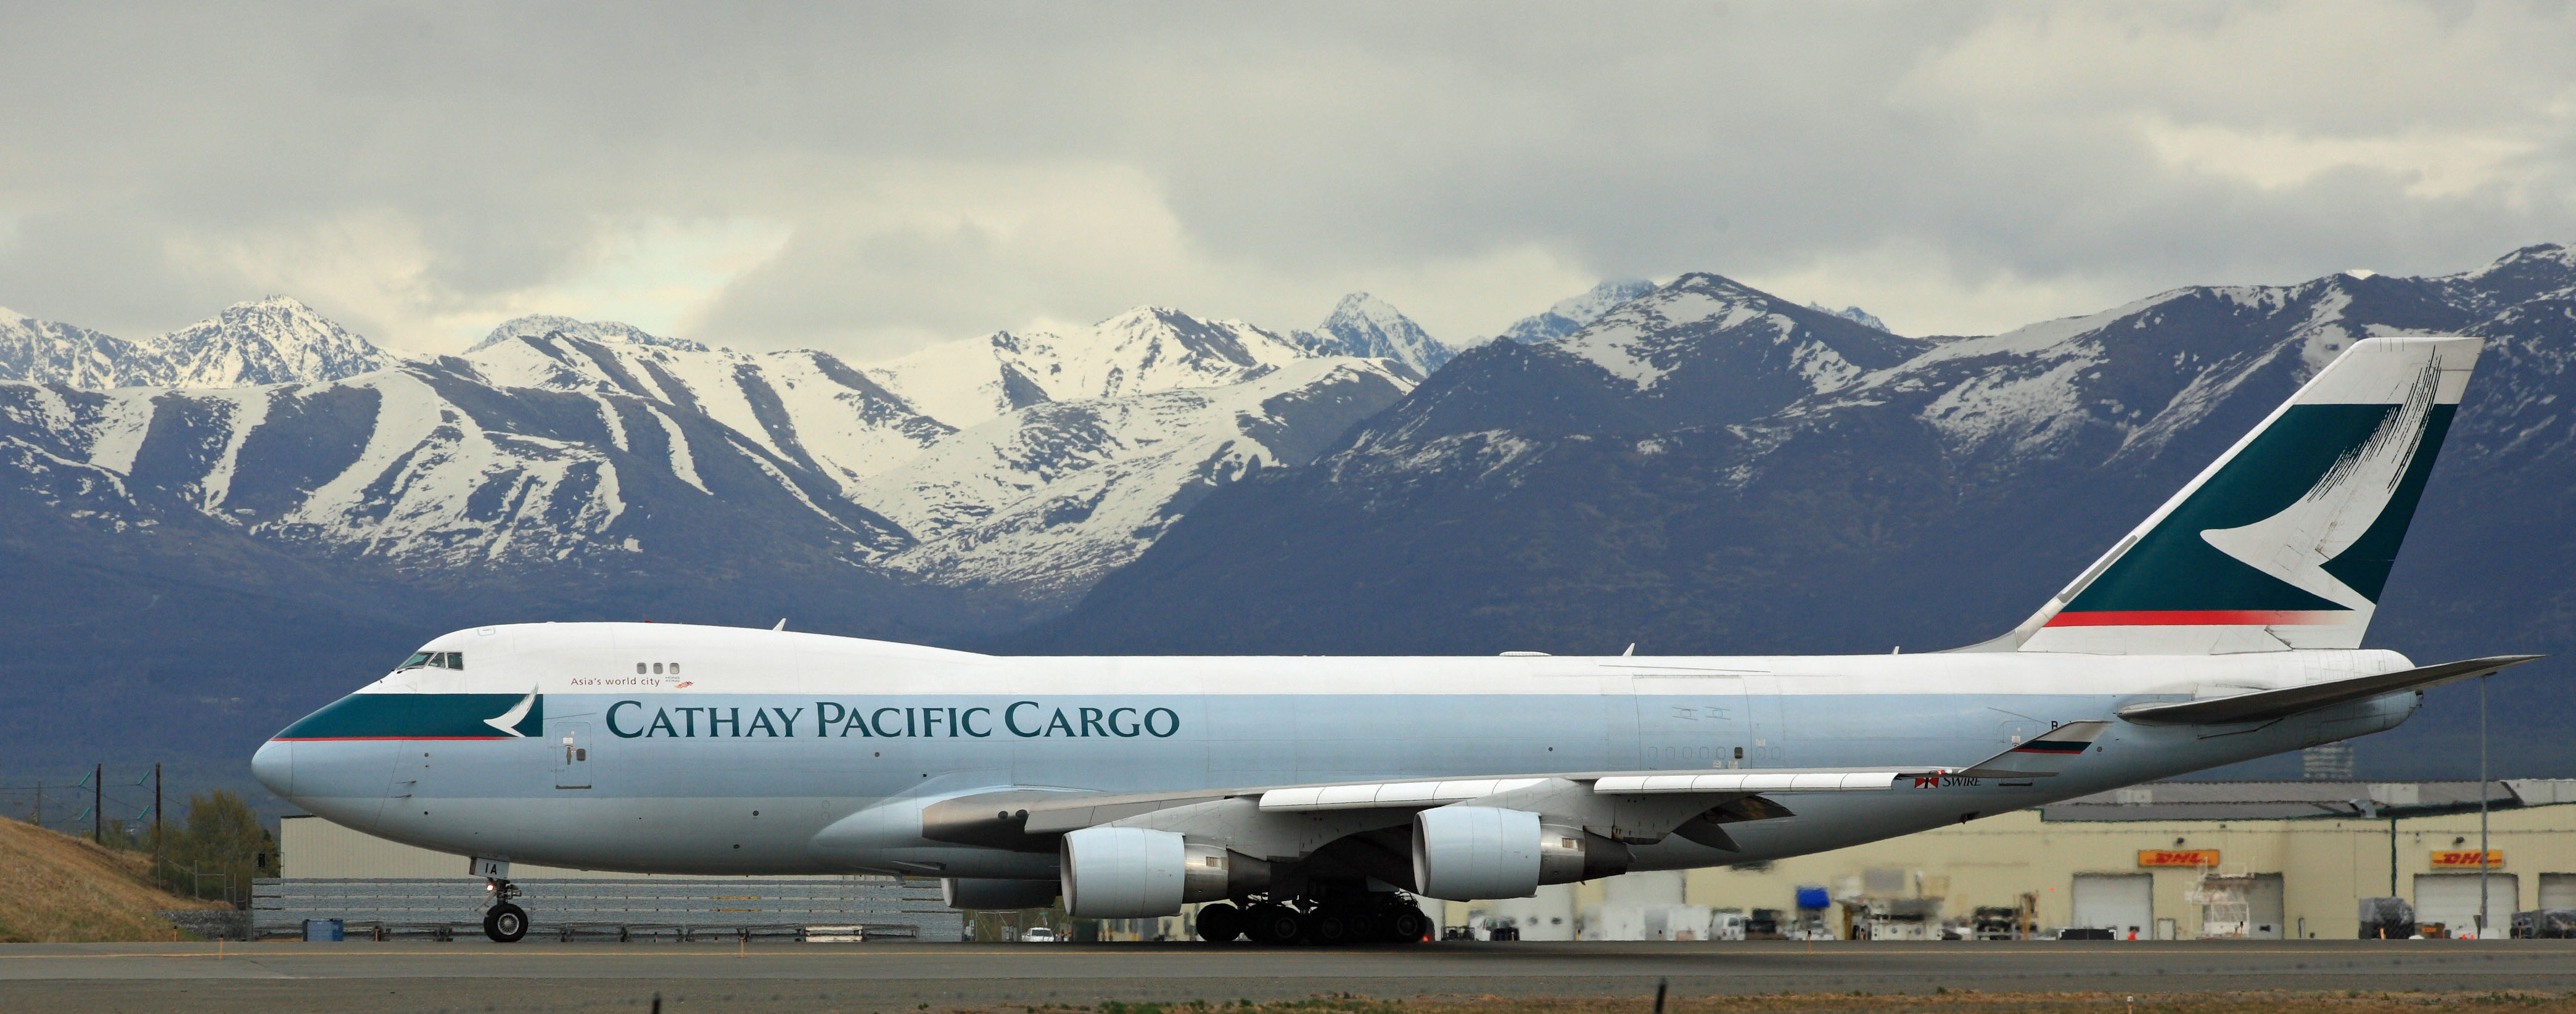 File Cathay Pacific Cargo 747 With The Chugach Mountains